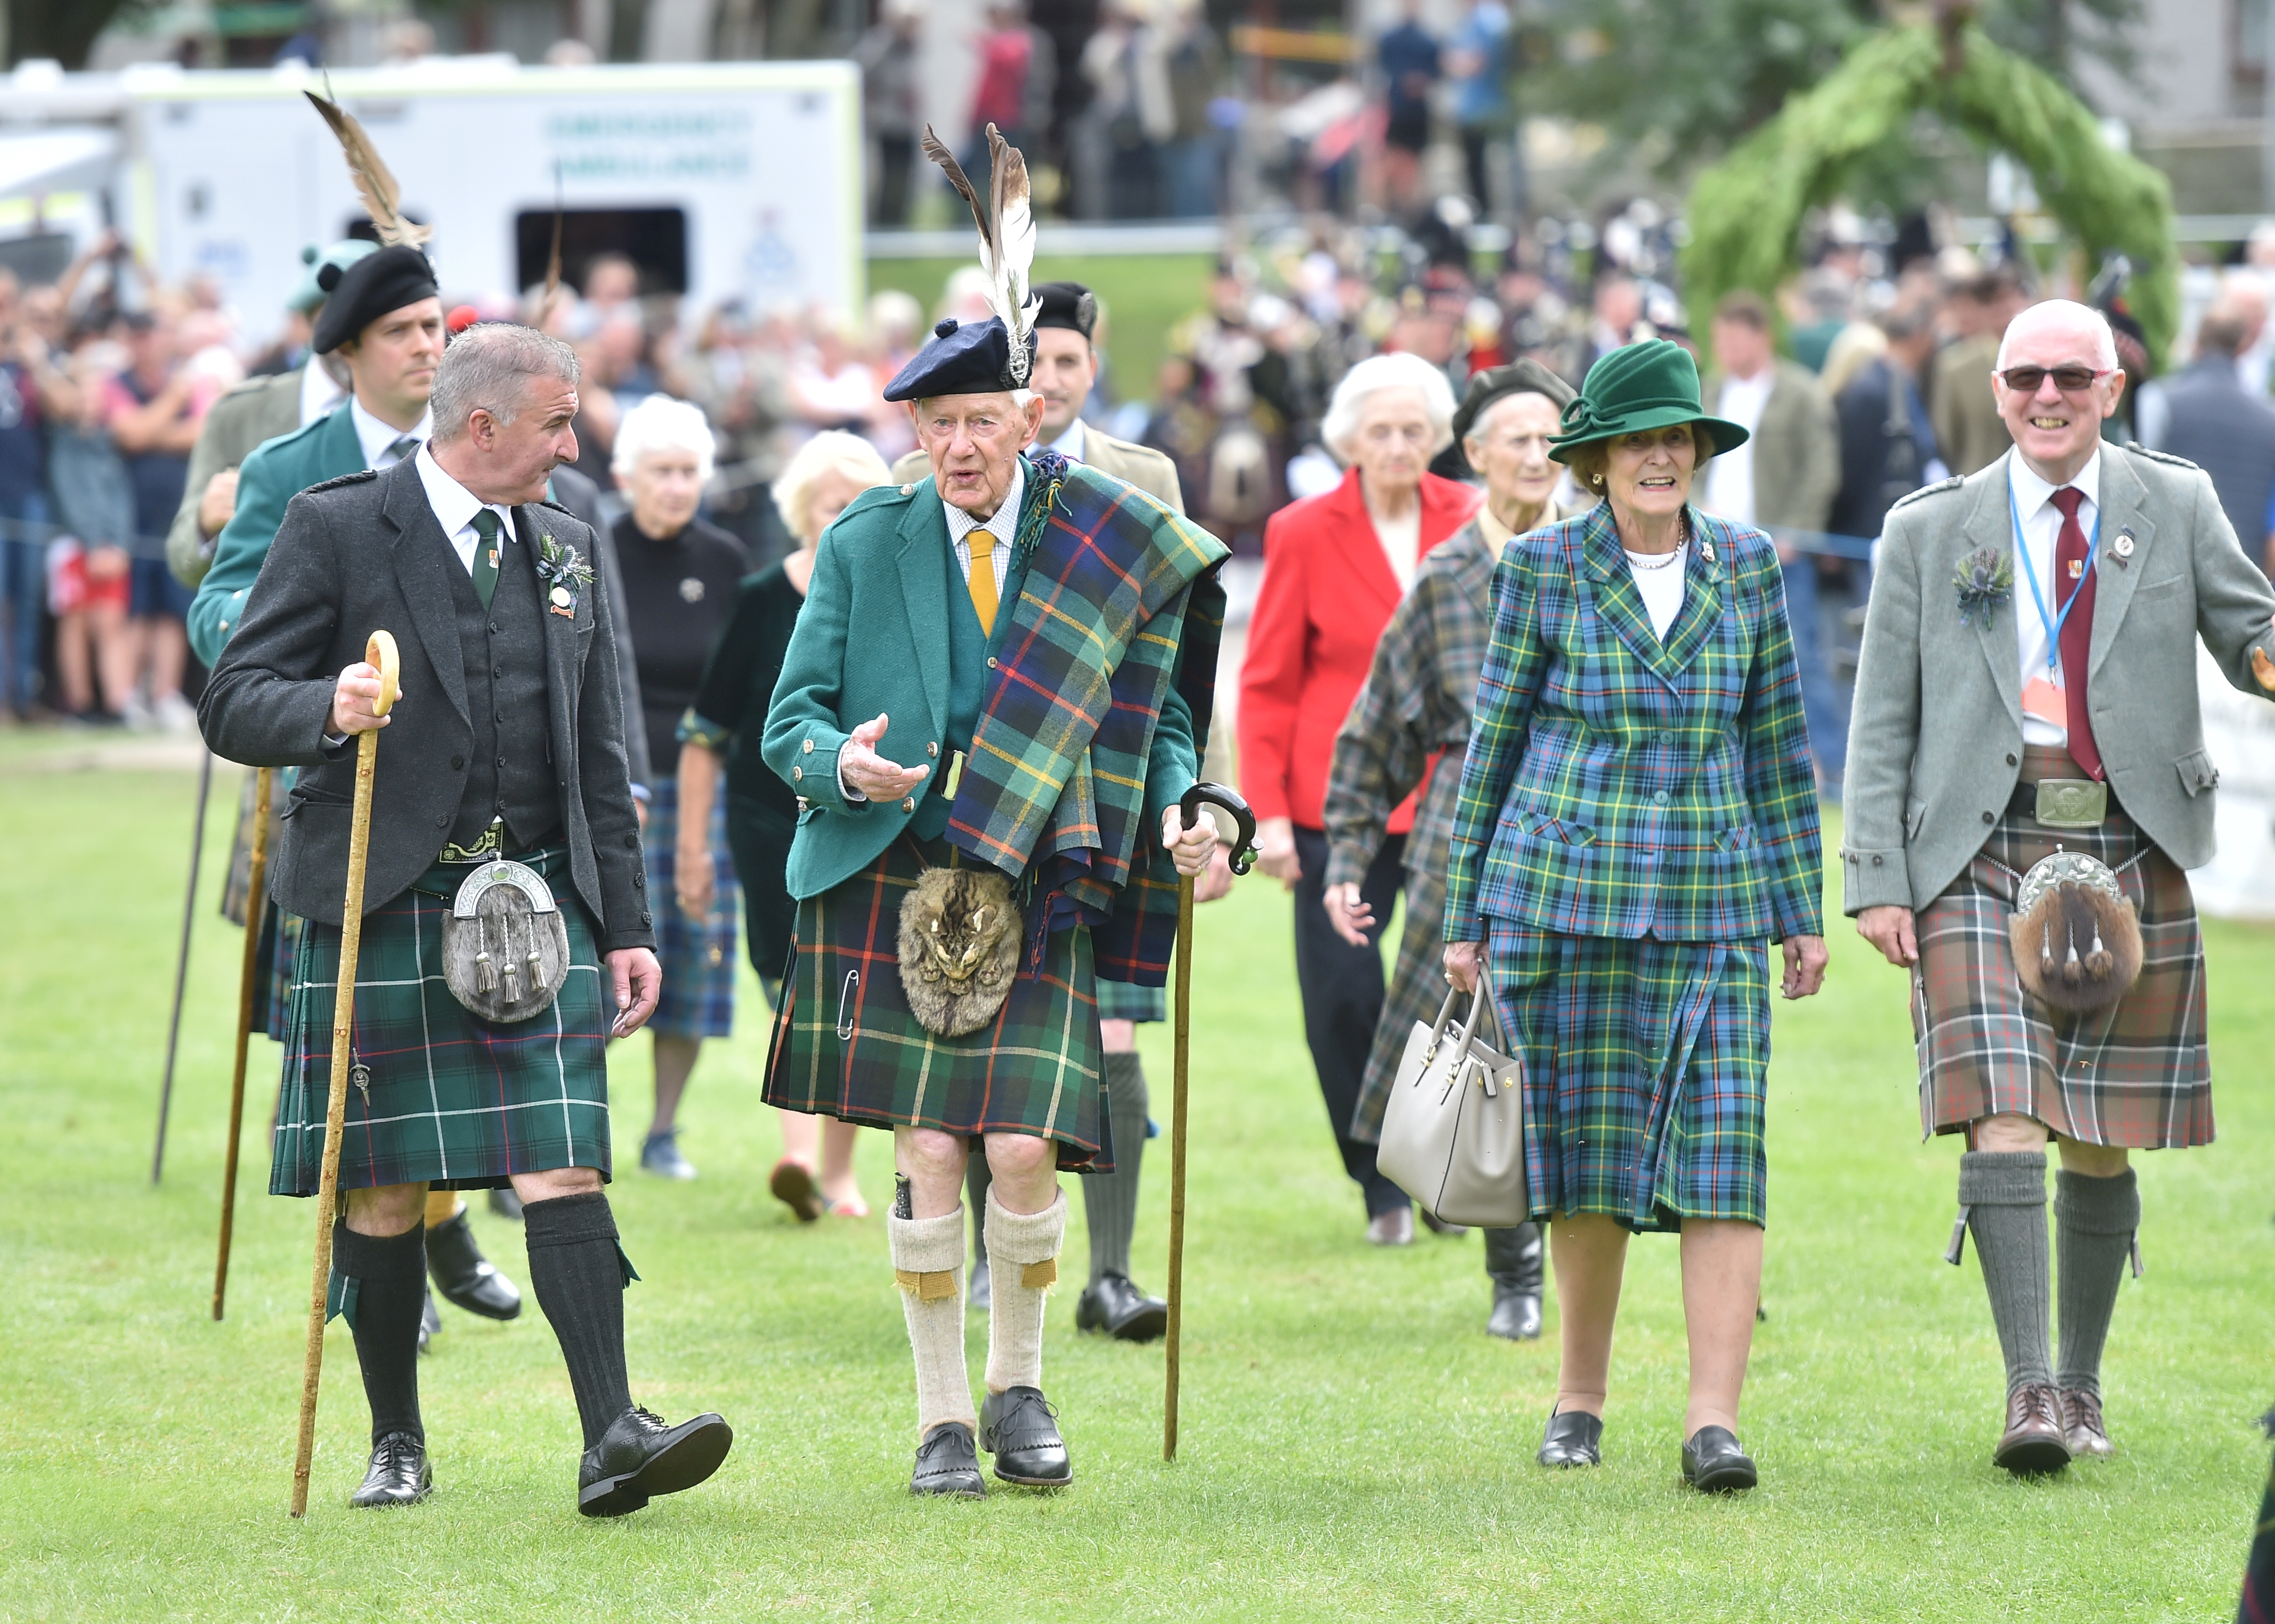 Games chieftain Captain Alwyne Farquharson, second from left, turned 100 this year.